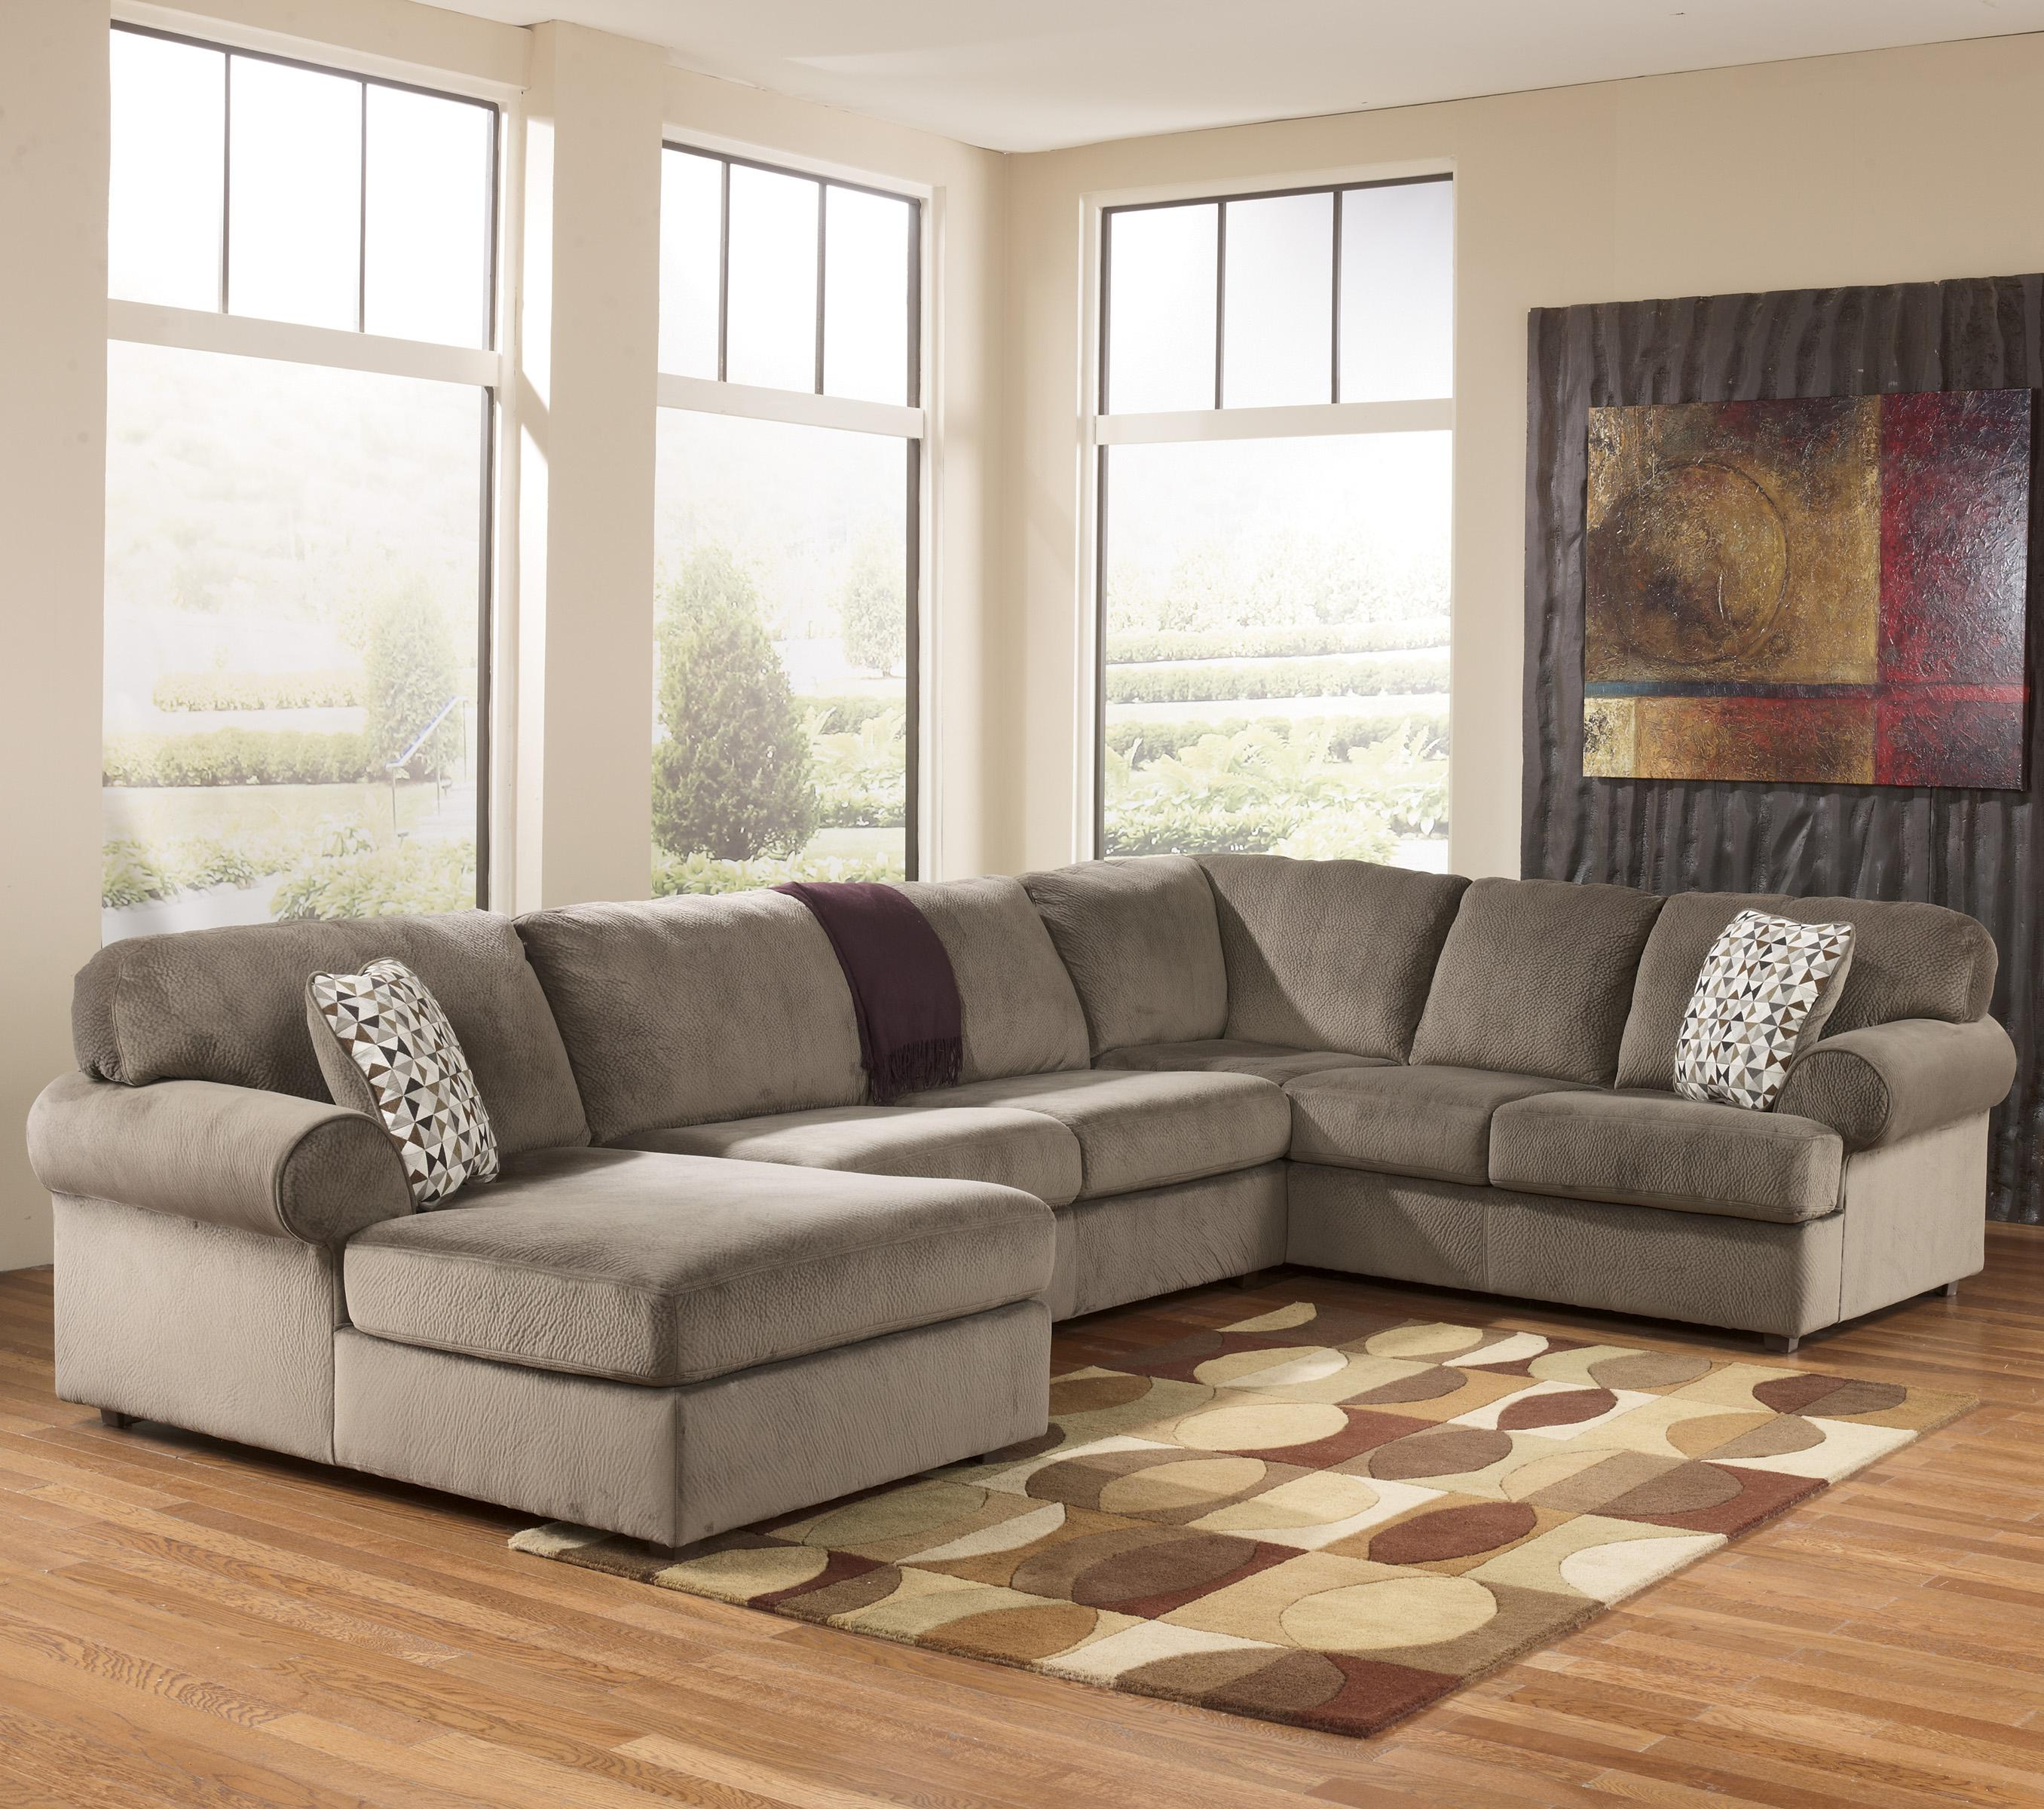 Baci Living Room Within Malbry Point 3 Piece Sectionals With Laf Chaise (View 15 of 20)